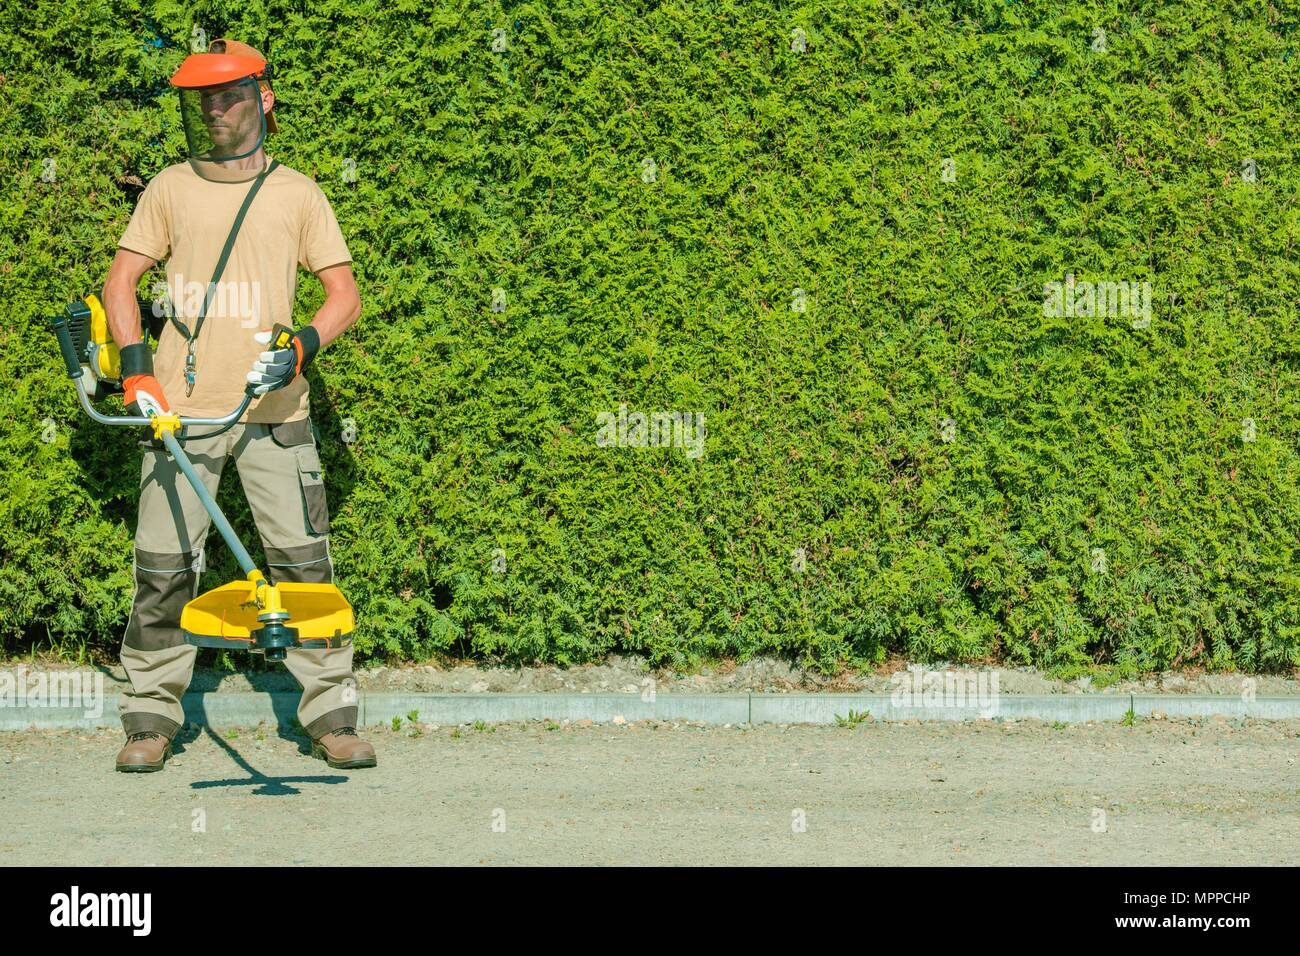 Gas String Trimmers Work. Caucasian Garden Worker with Power Tool. - Stock Image